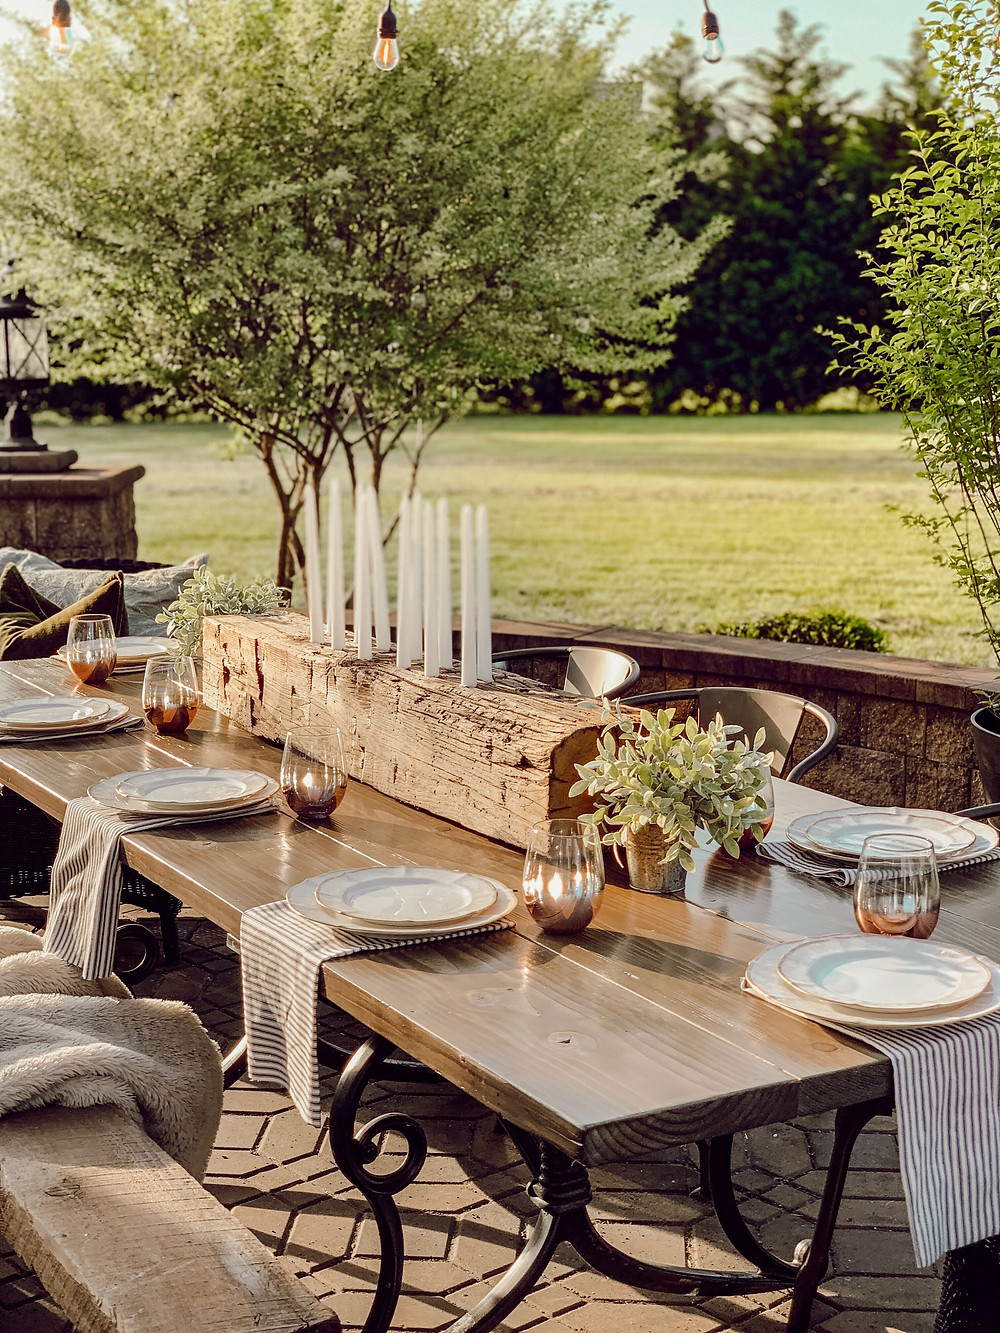 diy rustic centerpiece, patio refresh, one room challenge, better homes and gardens, the simple farmhouse, simple farmhouse decor, outdoor dining space